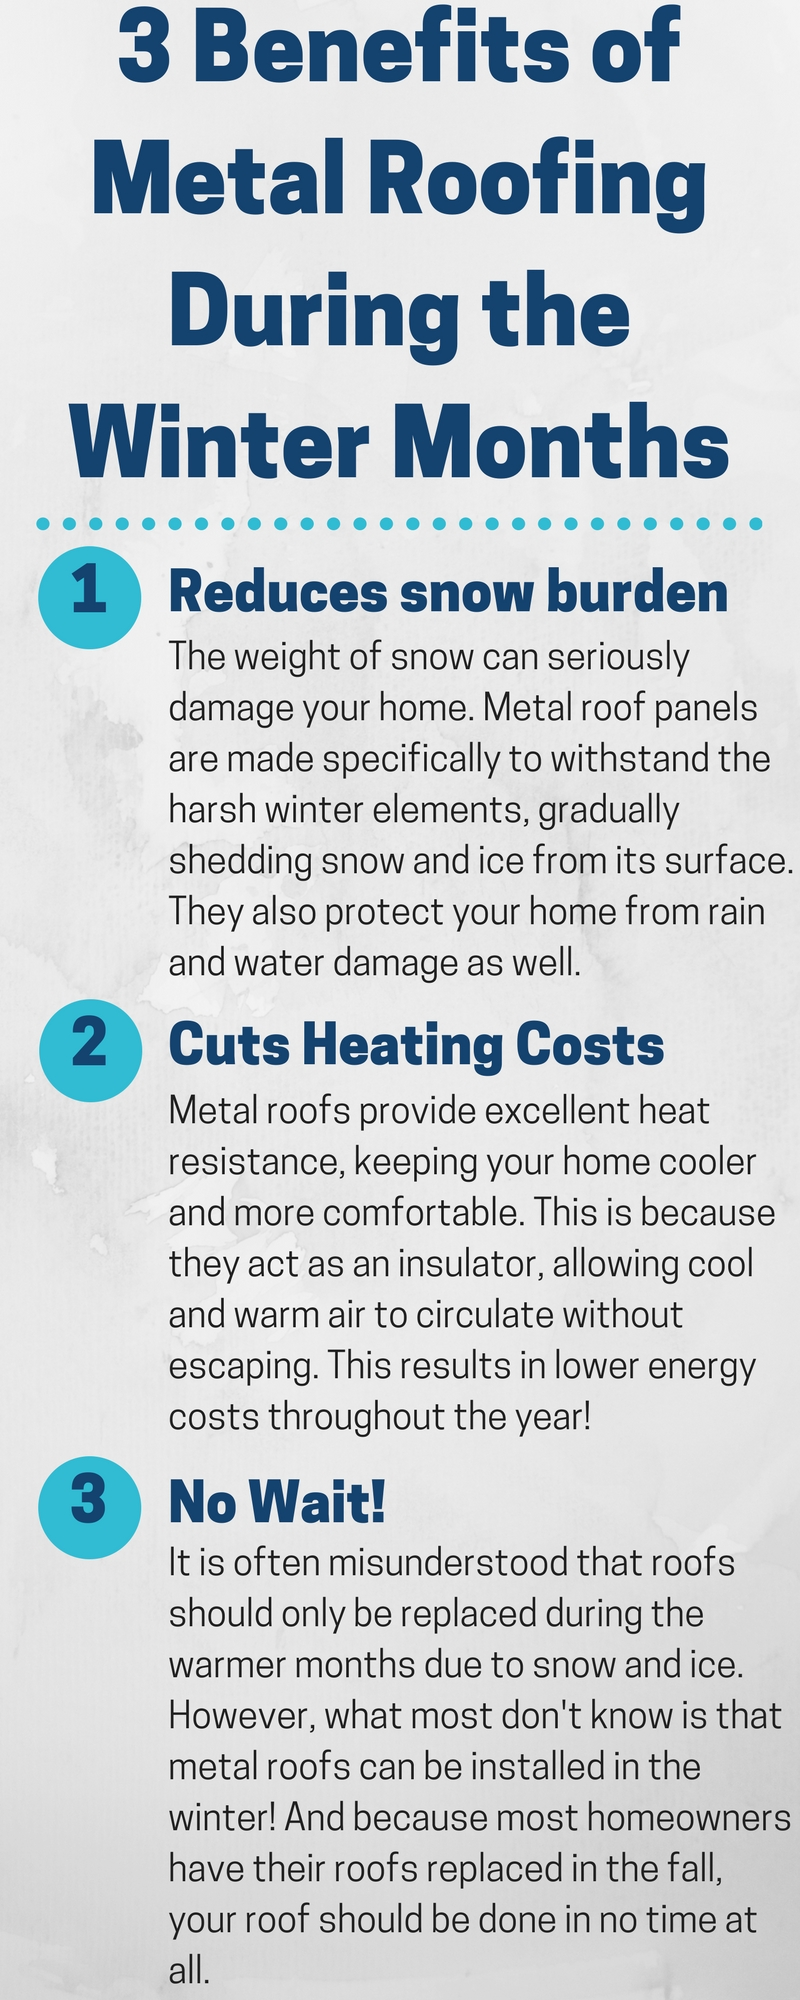 Three Benefits of Metal Roofing During the Winter Months - Image 2